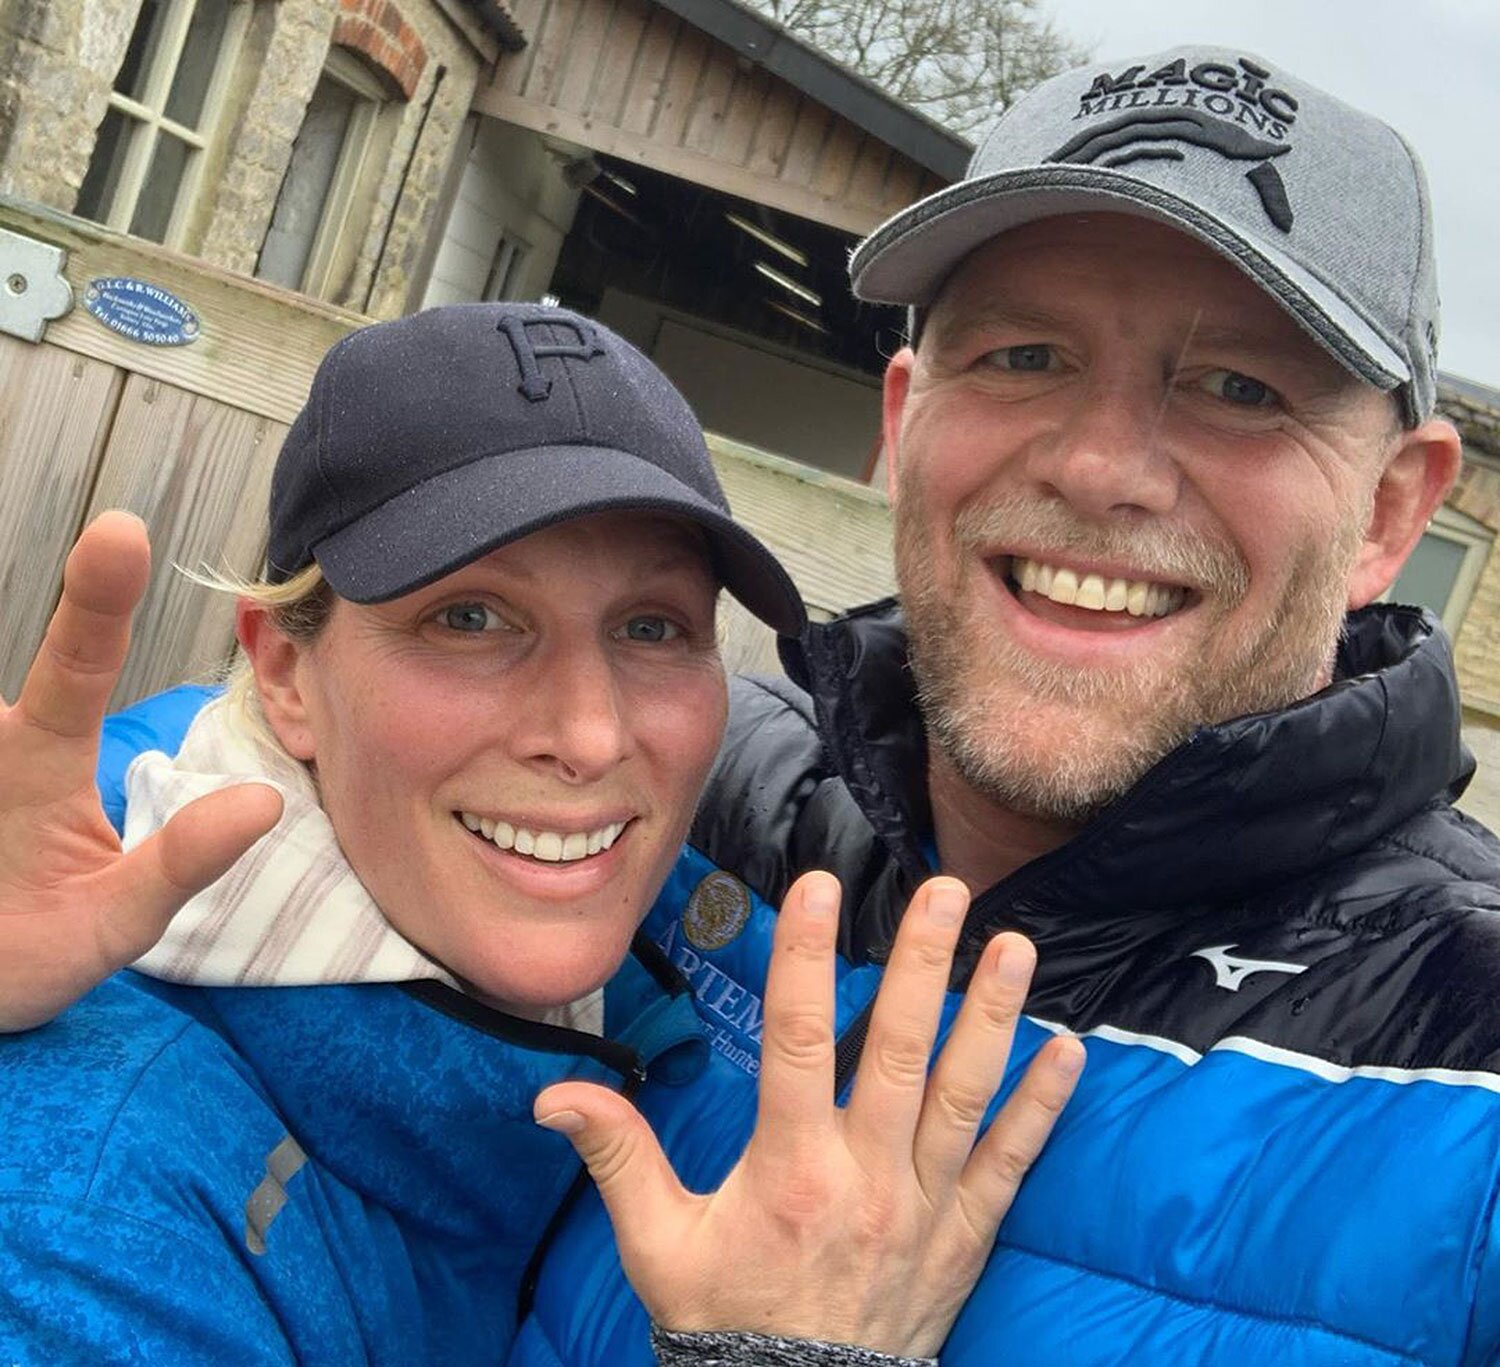 Zara Tindall Takes Rapid COVID-19 Test for Sports Campaign | PEOPLE.com